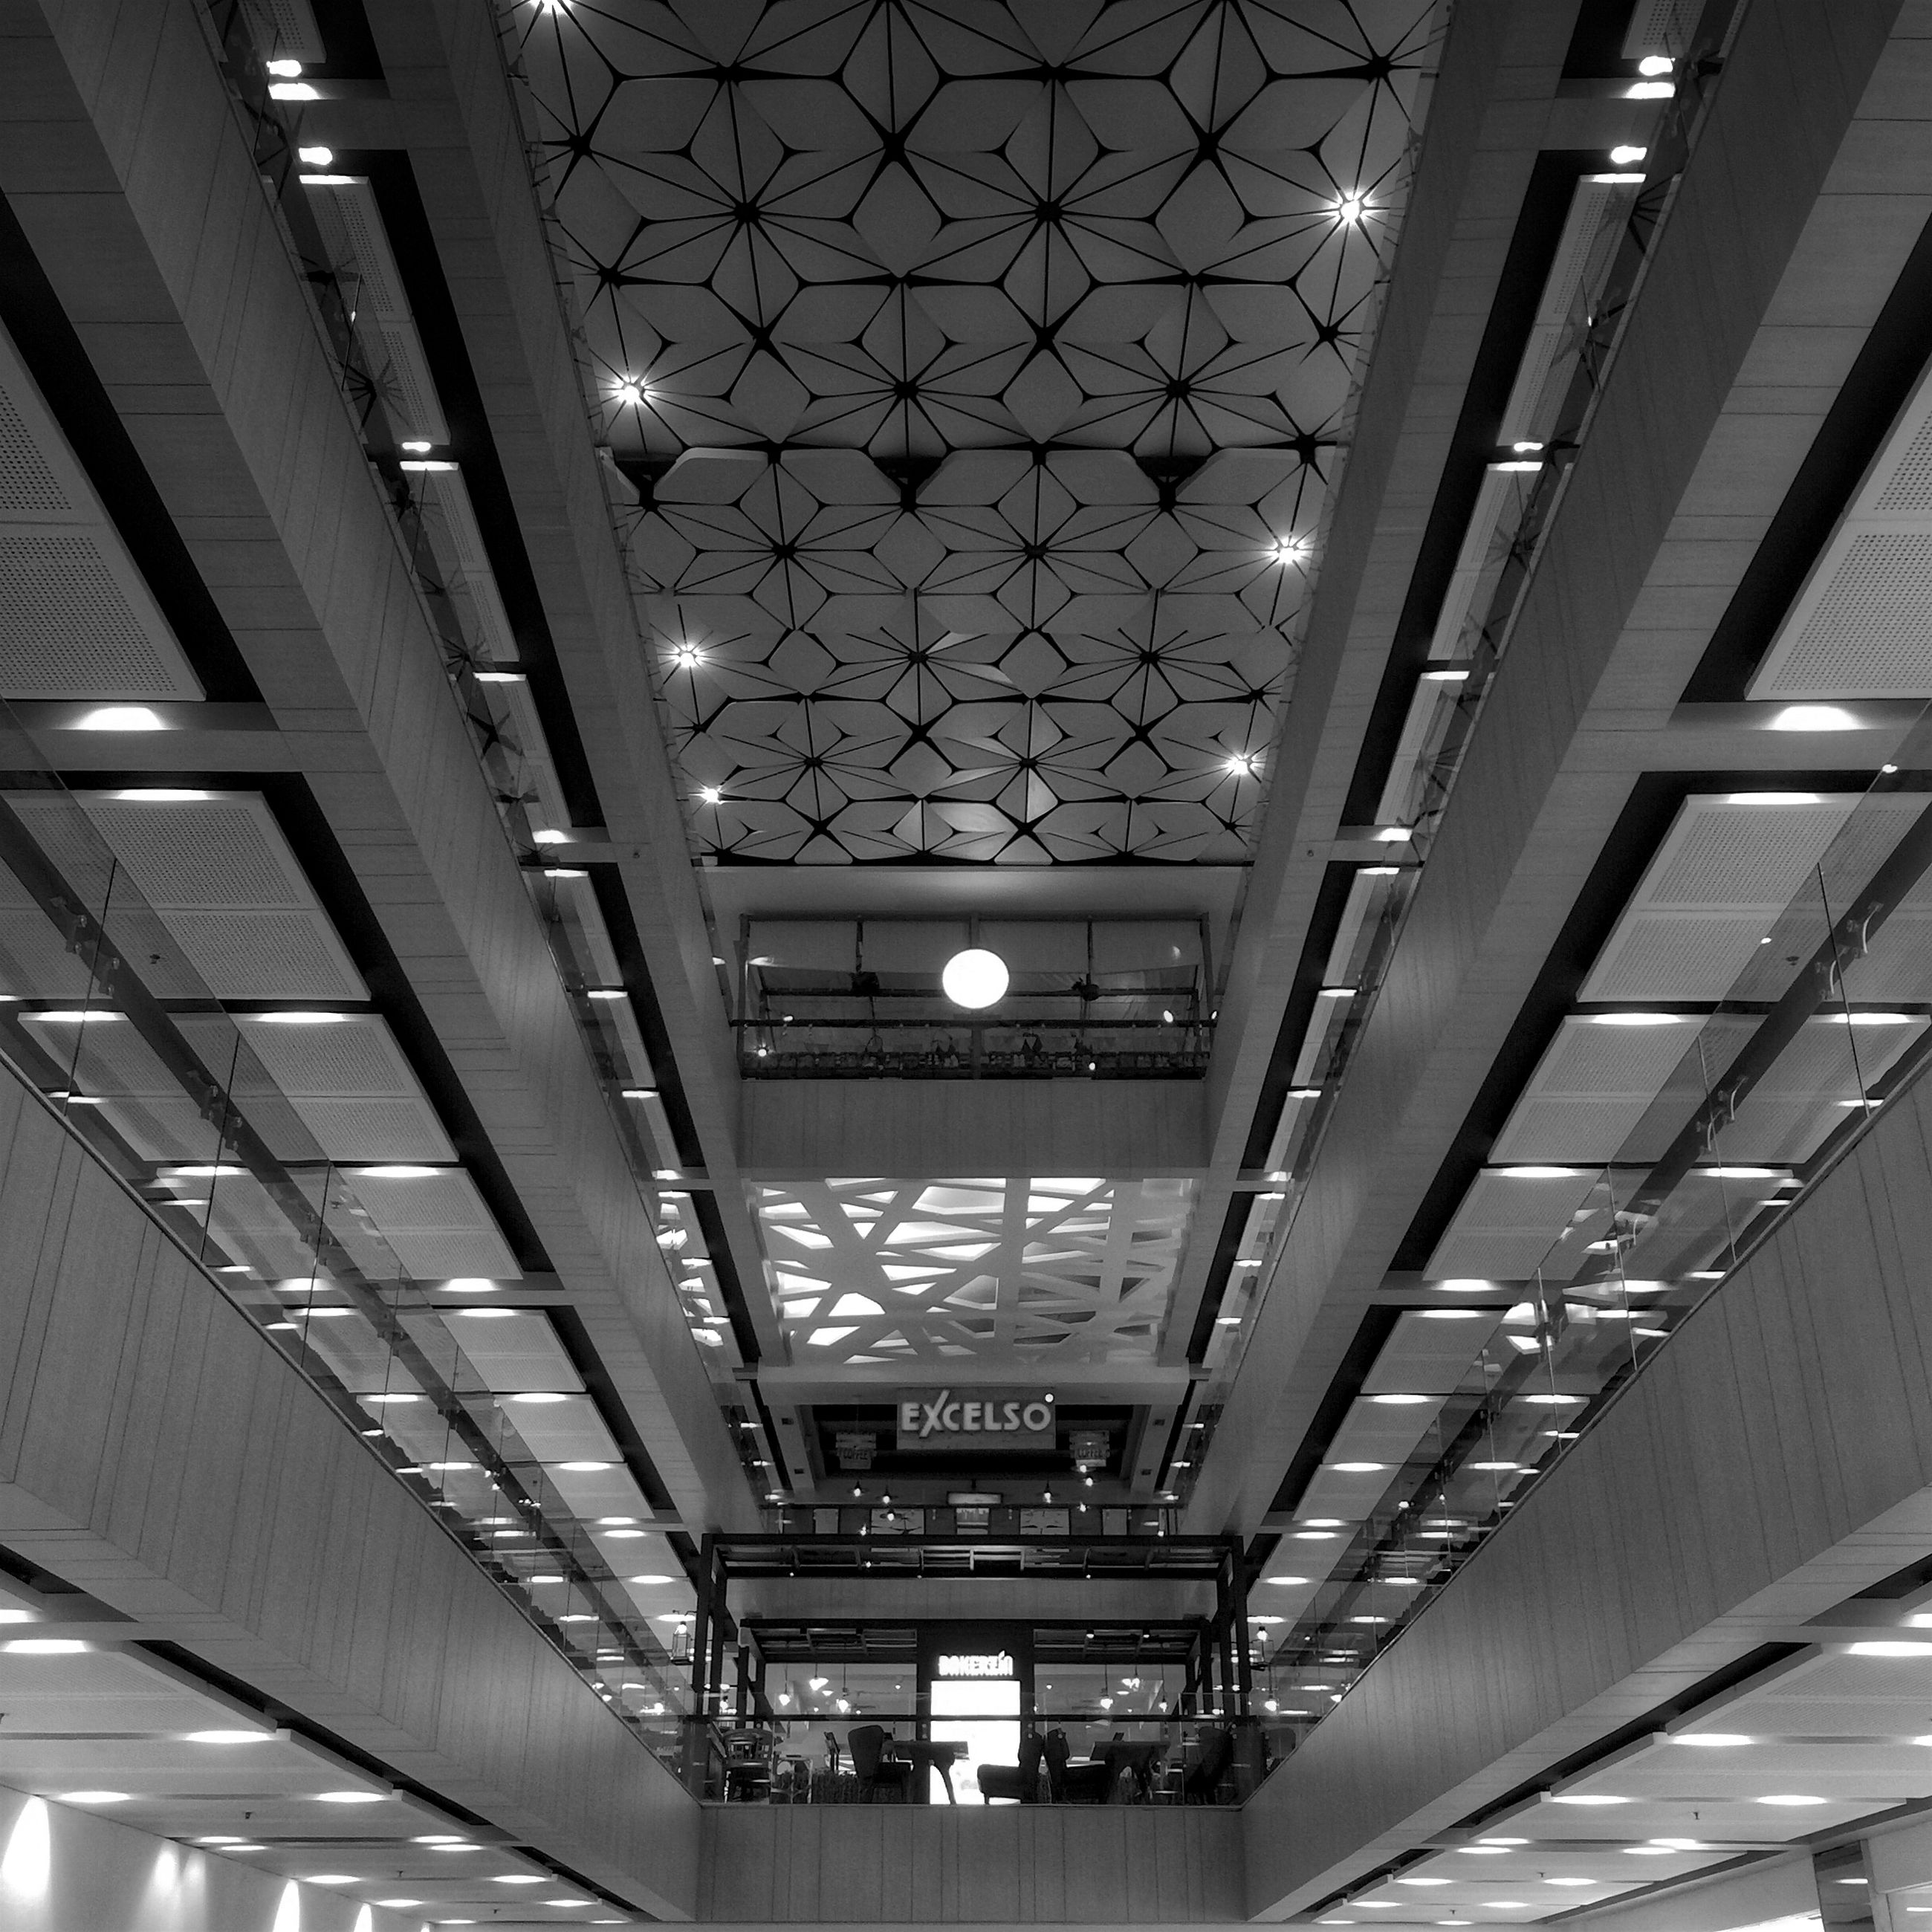 indoors, ceiling, architecture, built structure, illuminated, lighting equipment, low angle view, railroad station, modern, transportation building - type of building, in a row, shopping mall, diminishing perspective, incidental people, subway station, transportation, public transportation, interior, rail transportation, no people